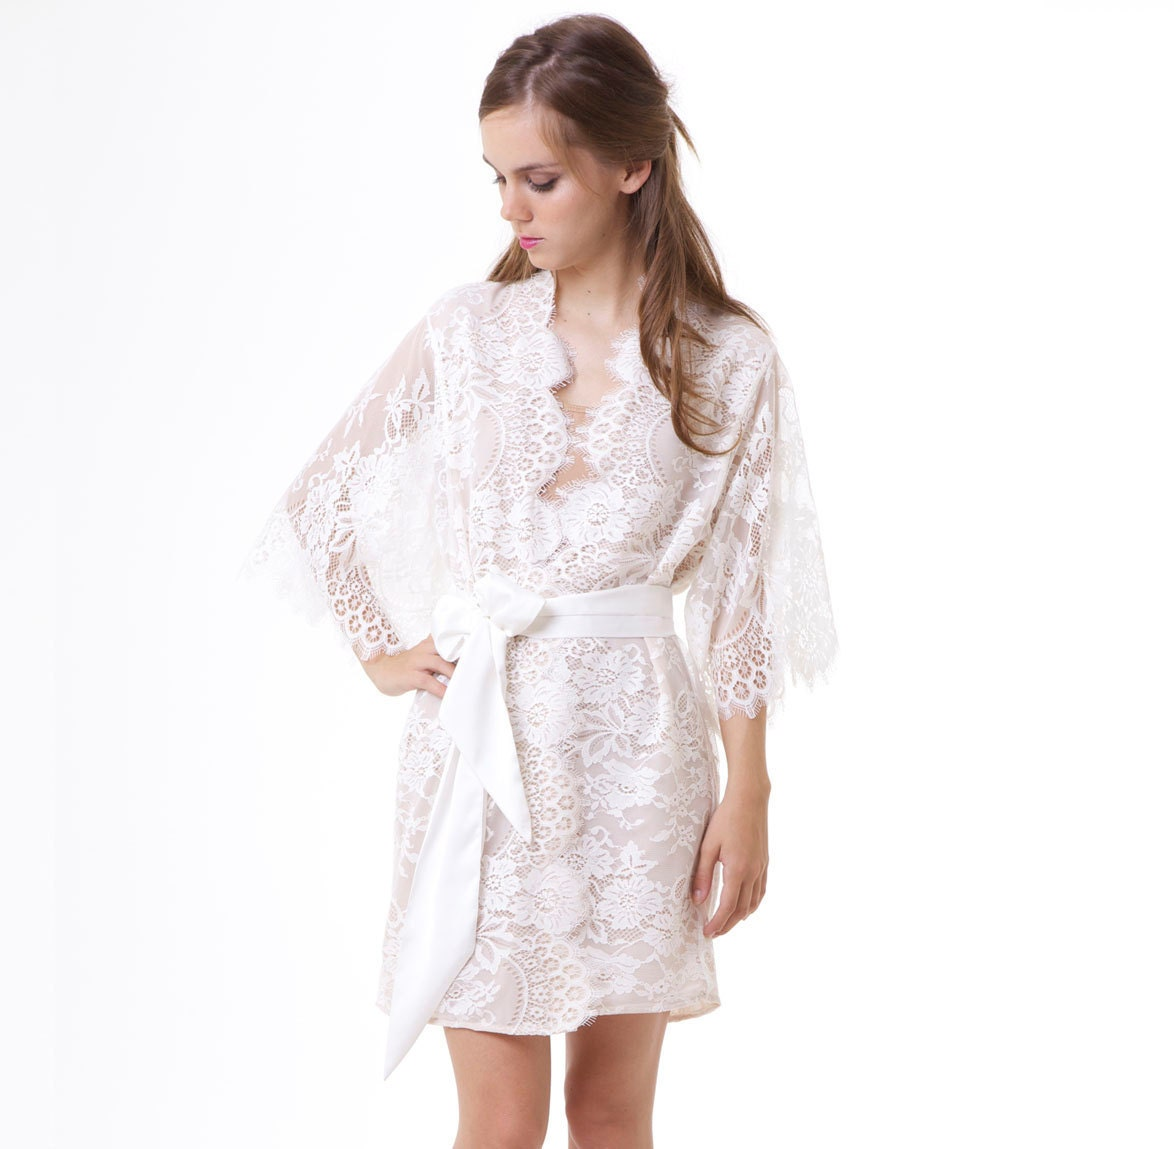 Bridal Robe To Get Ready In: Getting Ready Bridal Lace Robe Floral Ivory With Nude Silk